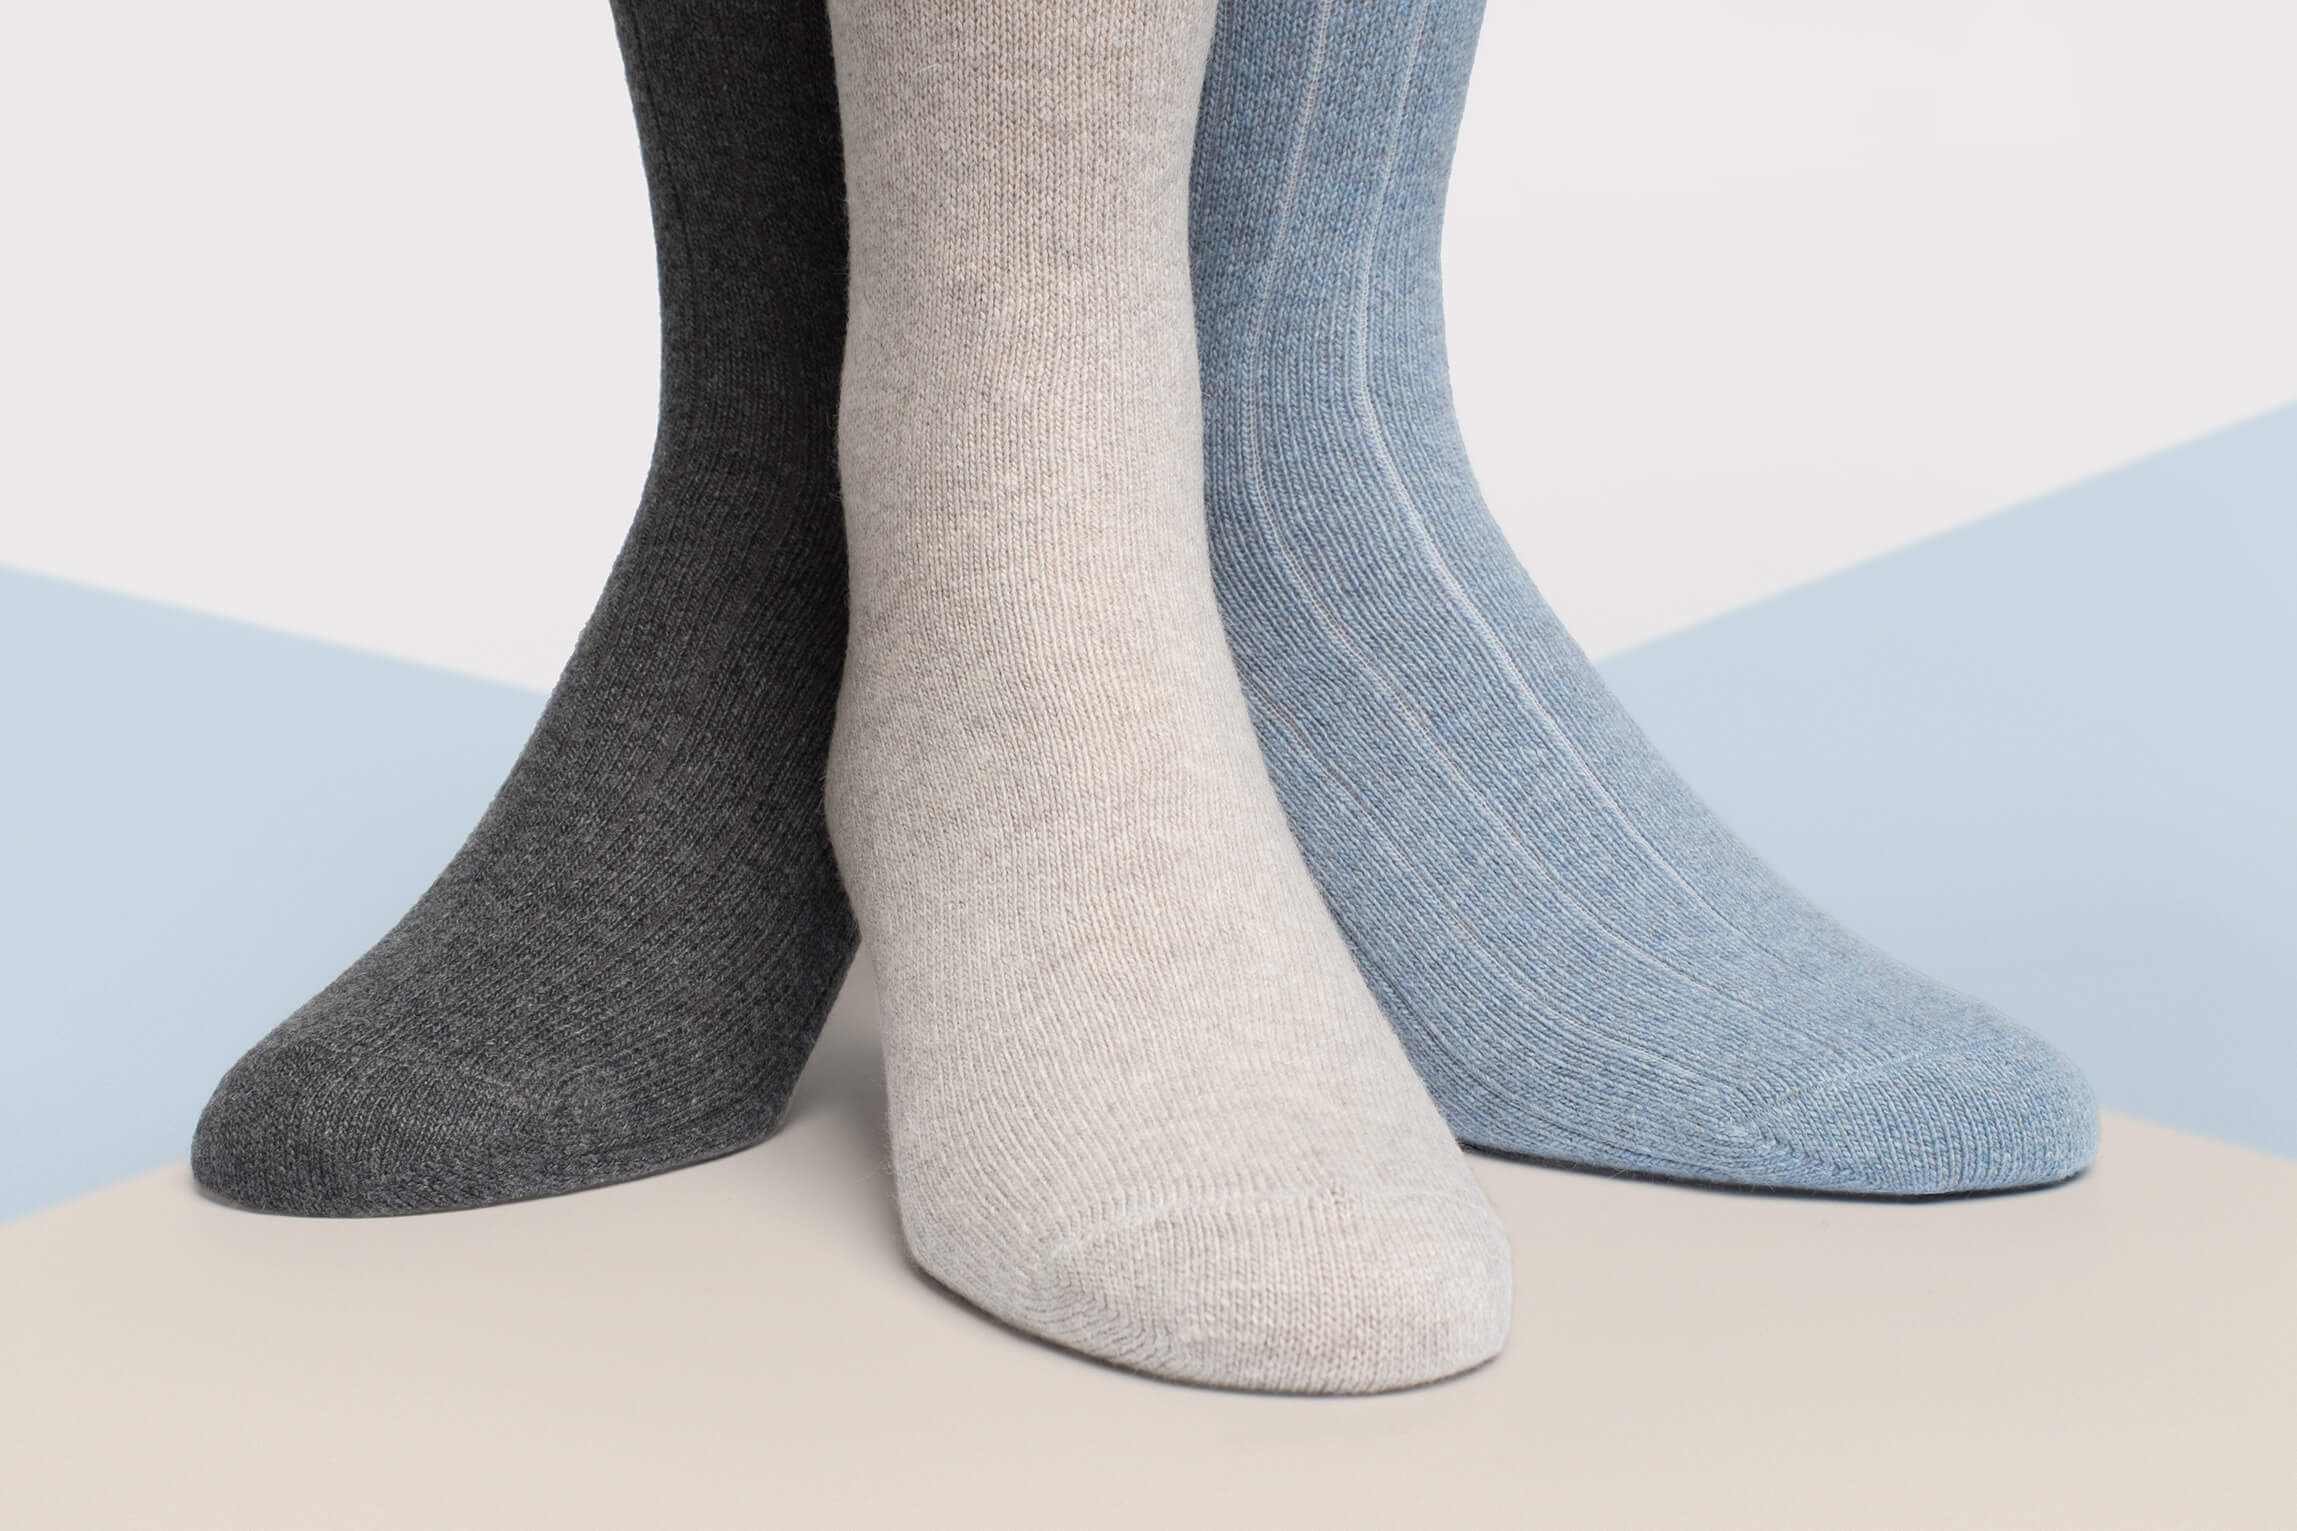 men's cashmere merino wool socks and cashmere mens socks  – Etiquette Clothiers